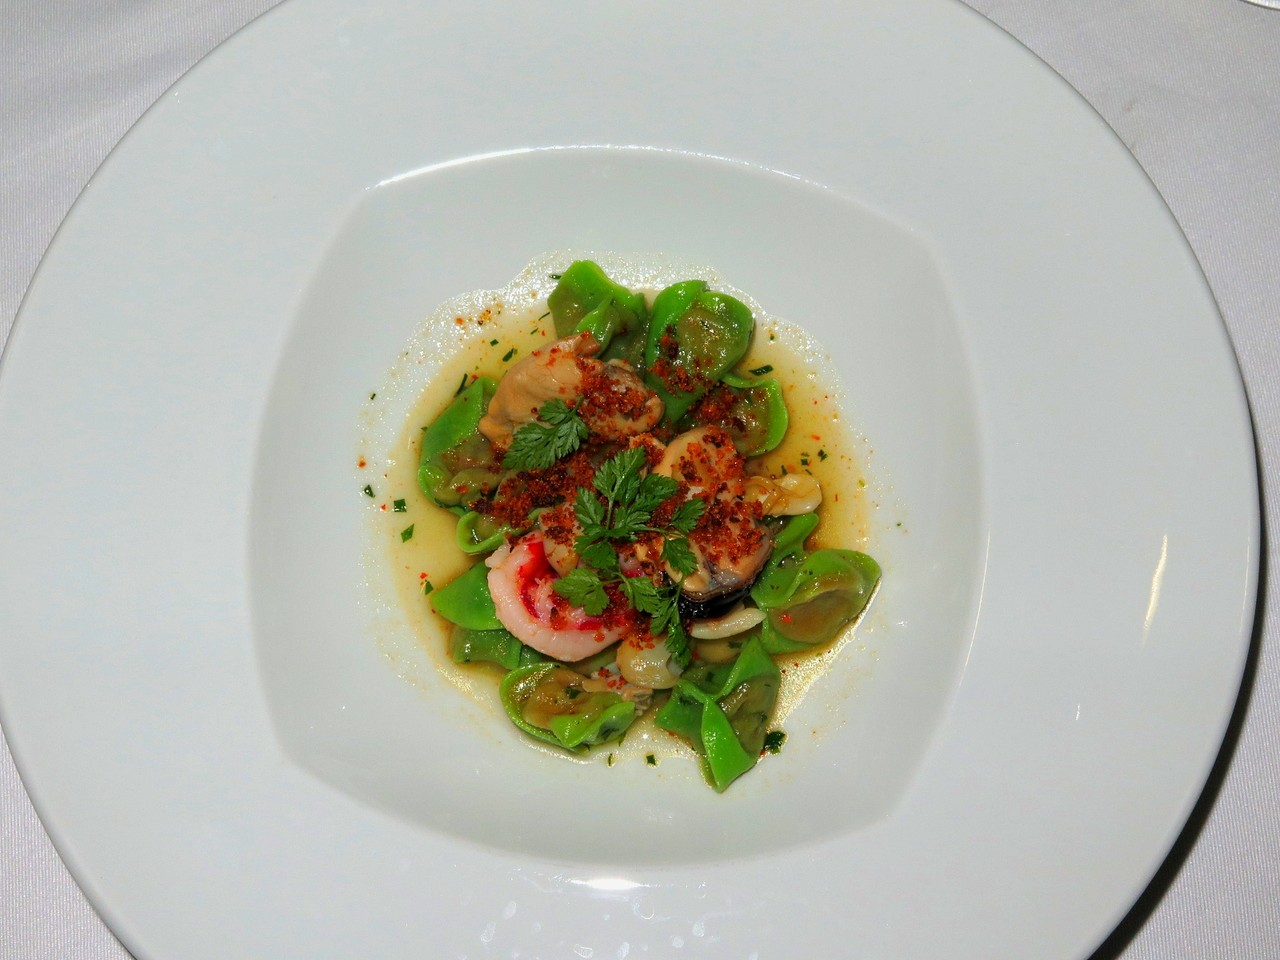 Green Tortellini with pappa al pomodoro and seafood